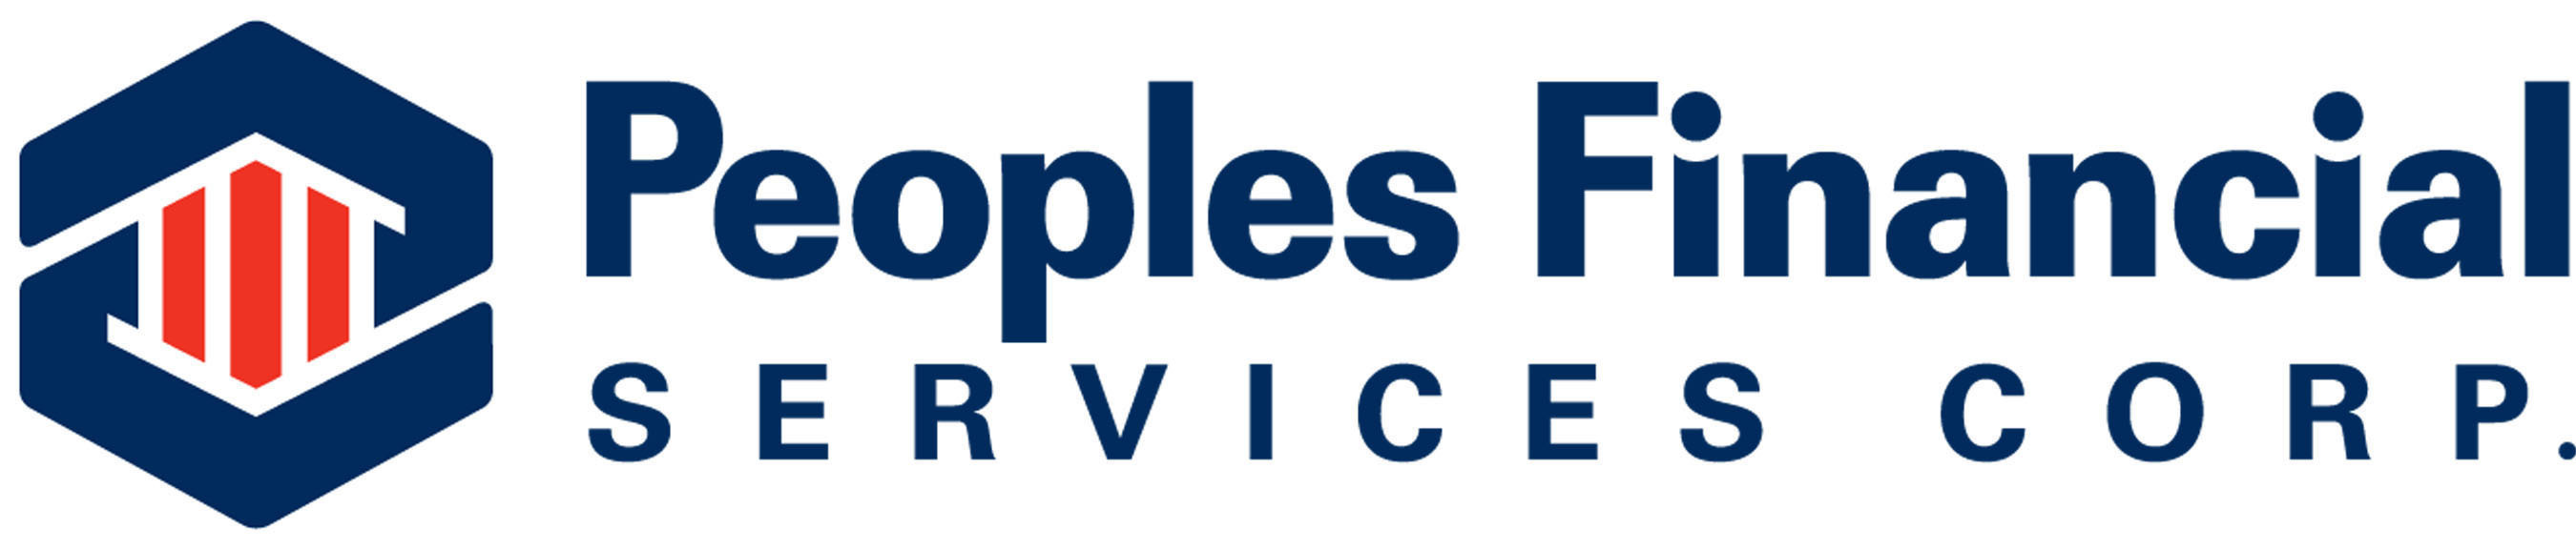 Peoples Financial Services Corp. Logo. (PRNewsFoto/Peoples Financial Services Corp.) (PRNewsFoto/PEOPLES FINANCIAL SERVICES CORP_)